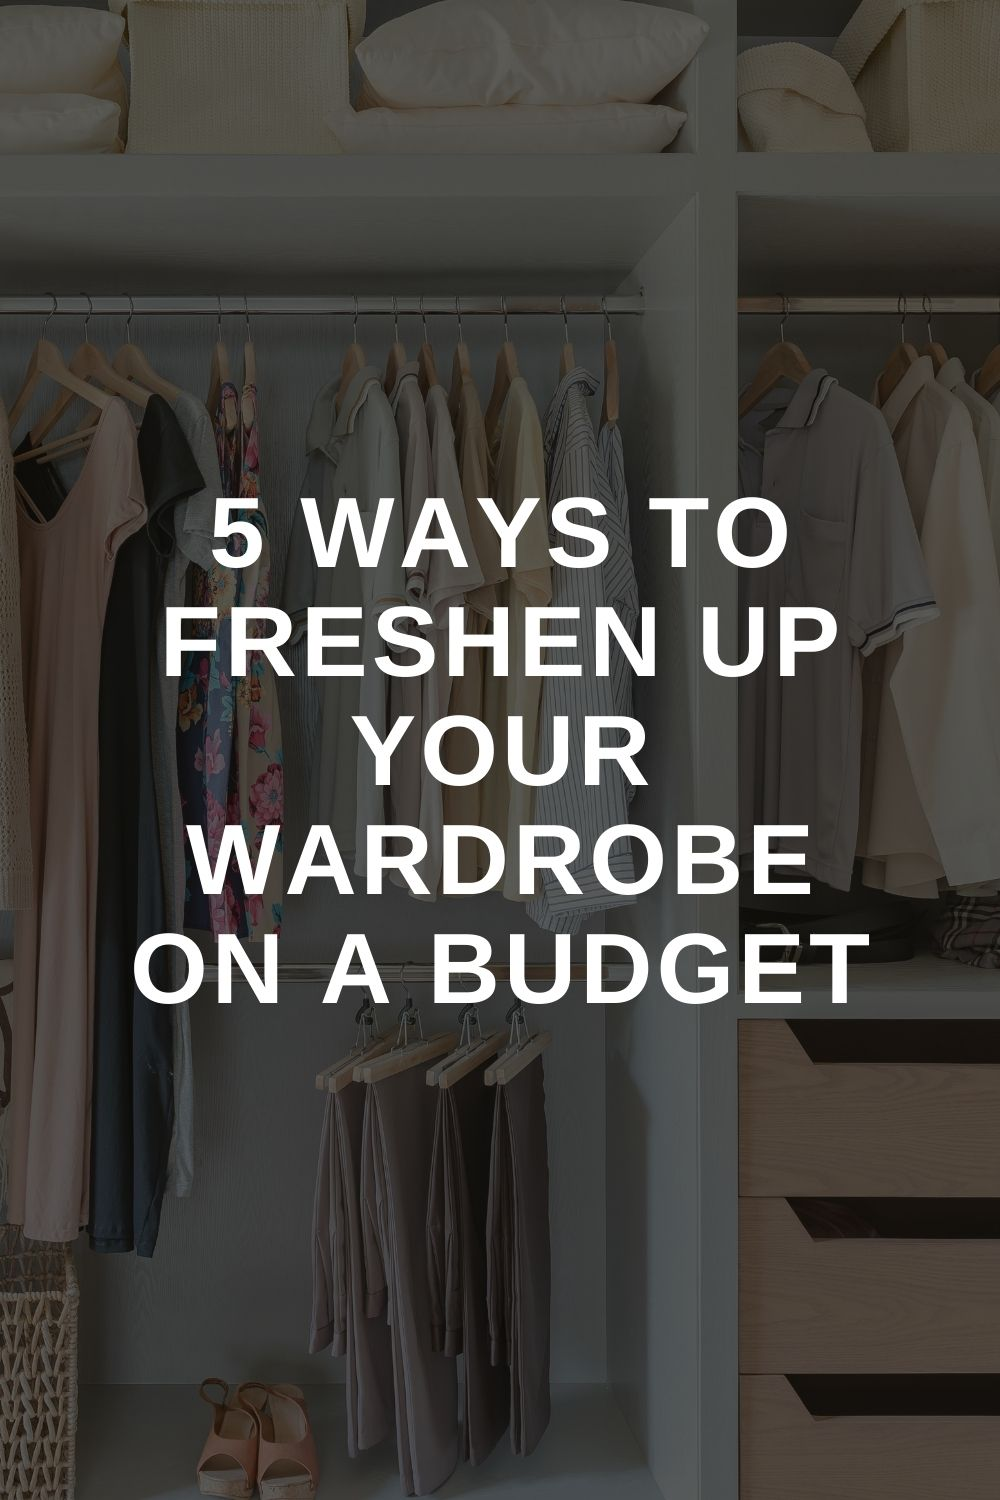 5 Ways to Freshen up Your Wardrobe on a Budget